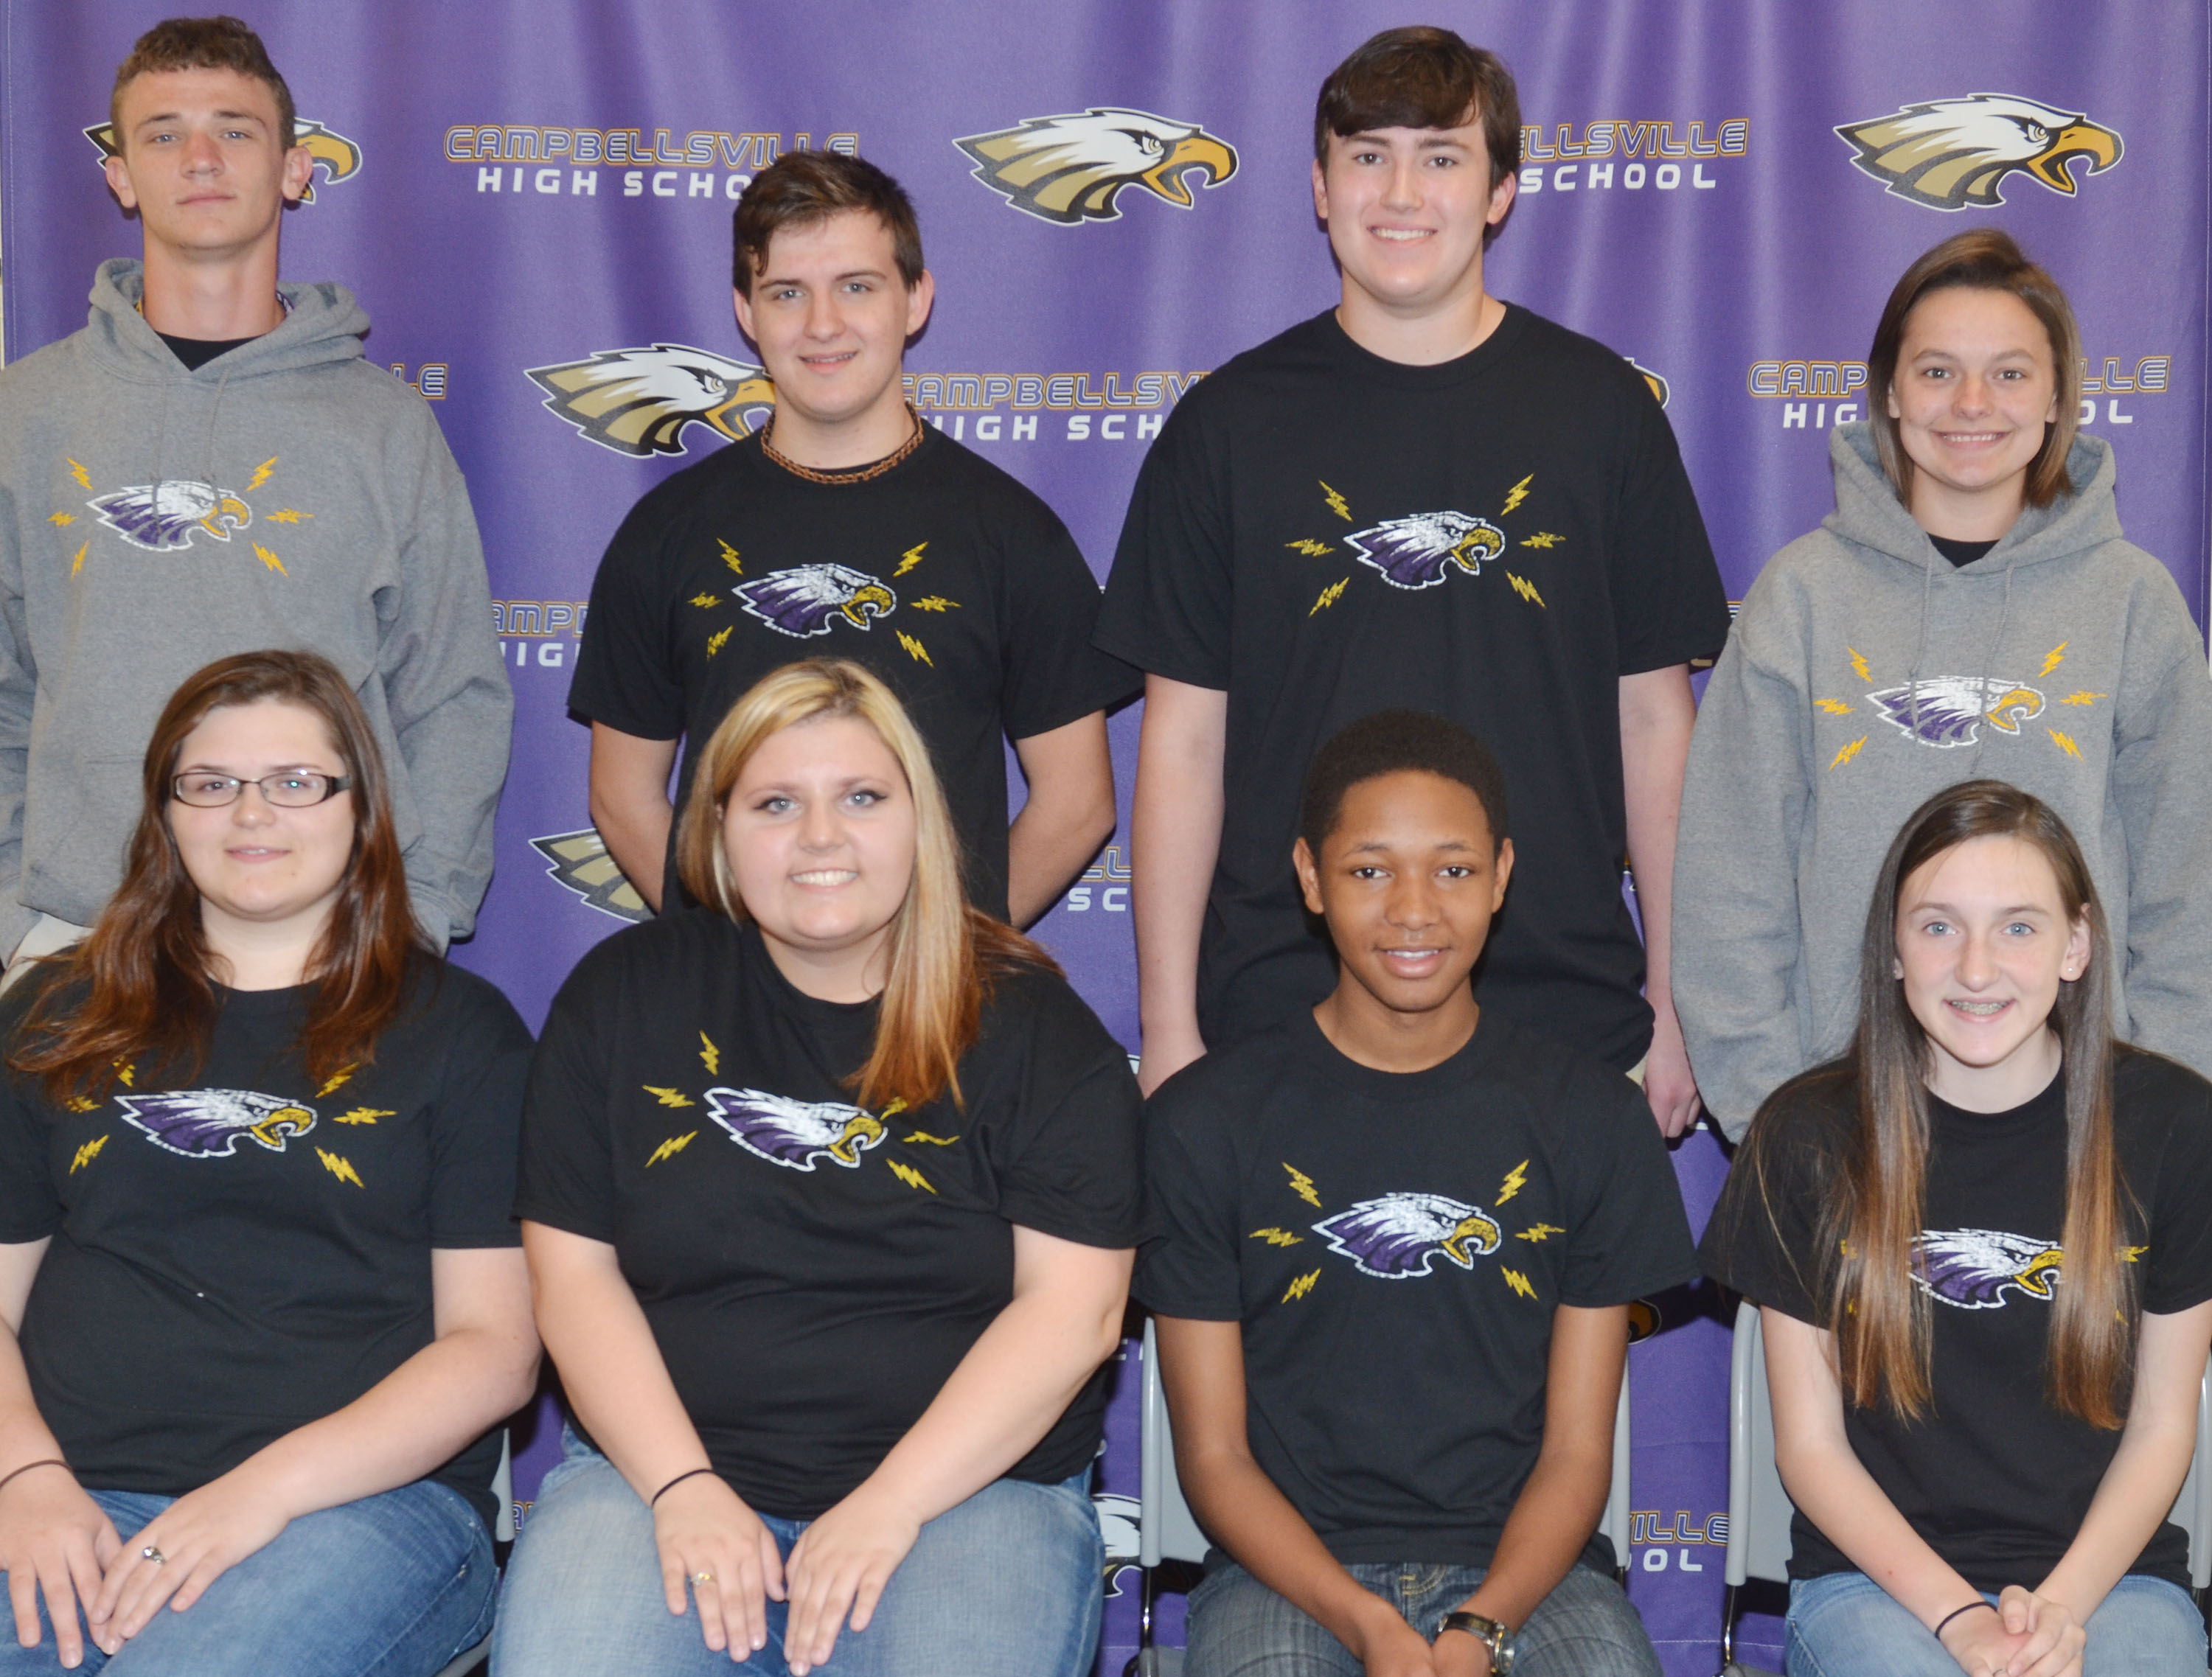 CHS Eagle News Team members for the 2016-2017 school year are, from left, front, senior Vera Brown, sophomore Andrea Bryant, senior Jaleel Cowan and freshman Zoe McAninch. Back, juniors Connor Wilson and Austin Fitzgerald and seniors Zack Settle and Kyrsten Hill.